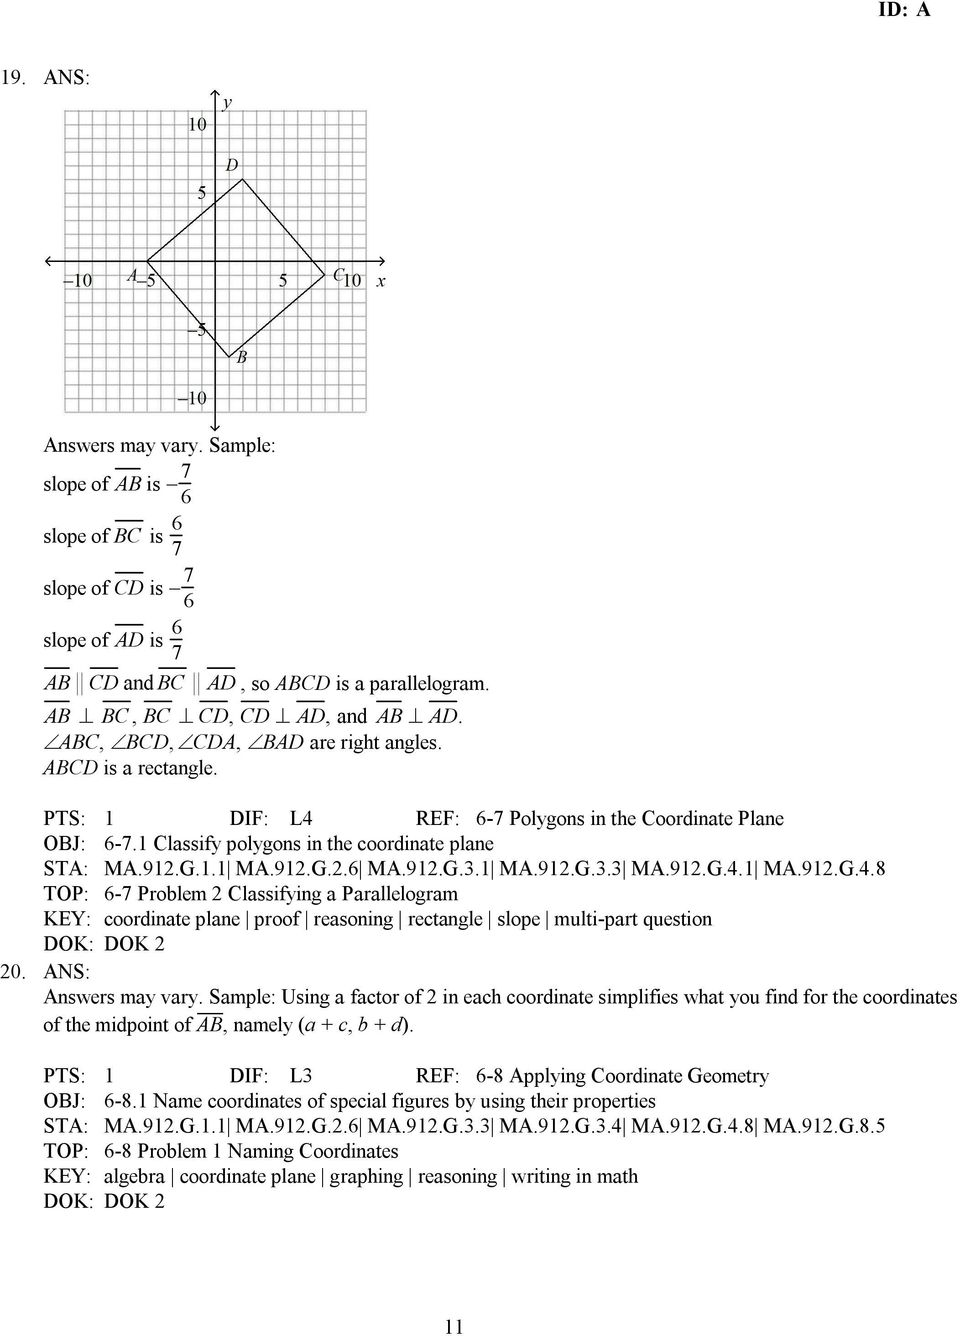 912.G.3.1 MA.912.G.3.3 MA.912.G.4.1 MA.912.G.4.8 TOP: 6-7 Problem 2 Classifying a Parallelogram KEY: coordinate plane proof reasoning rectangle slope multi-part question 20. ANS: Answers may vary.